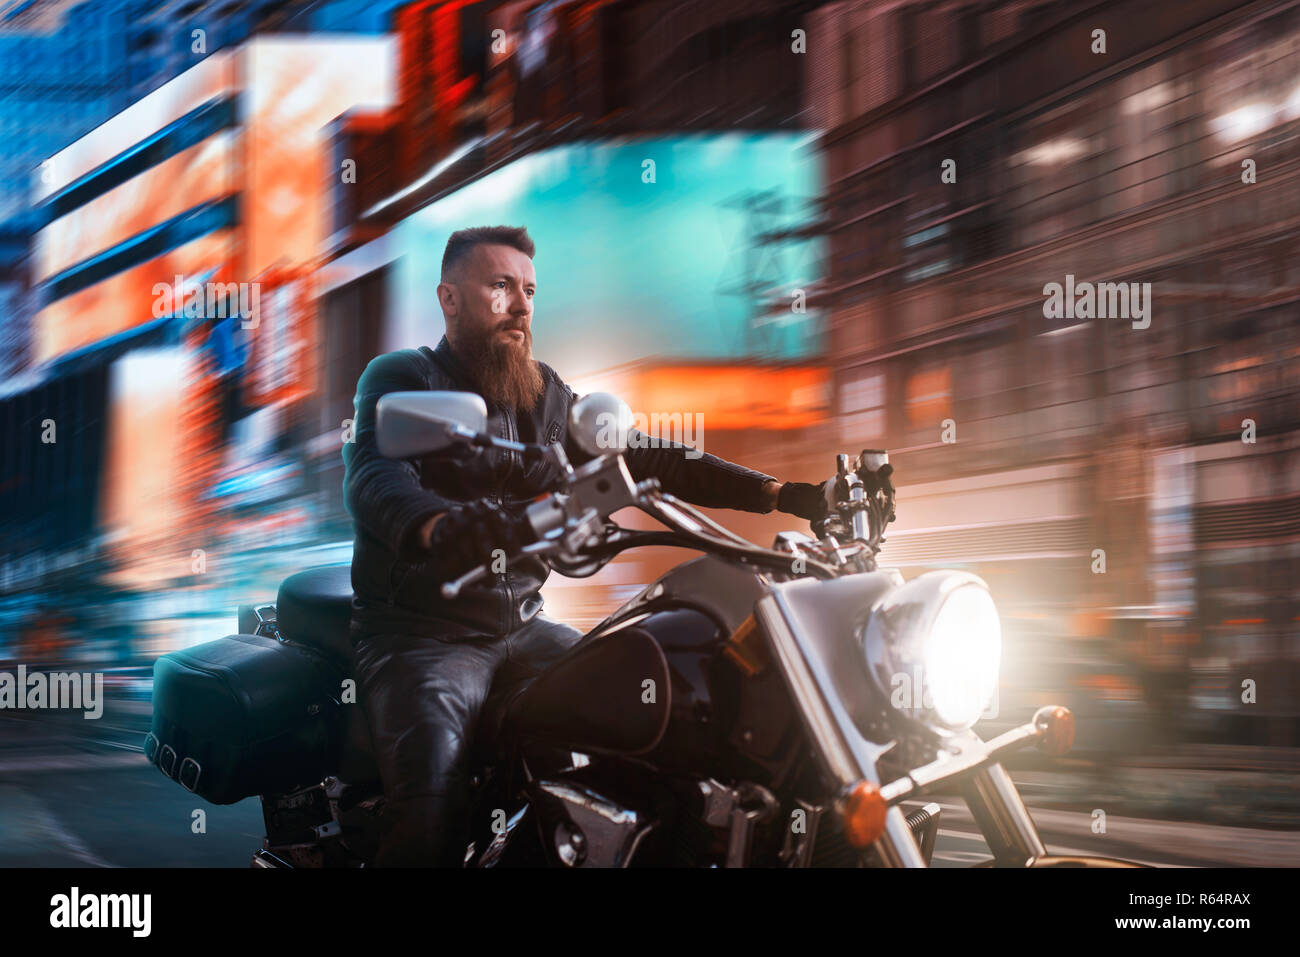 Biker riding on chopper through the night city, blured cityscape and advertising with neon lights on background. Vintage bike, rider on motorcycle, as - Stock Image